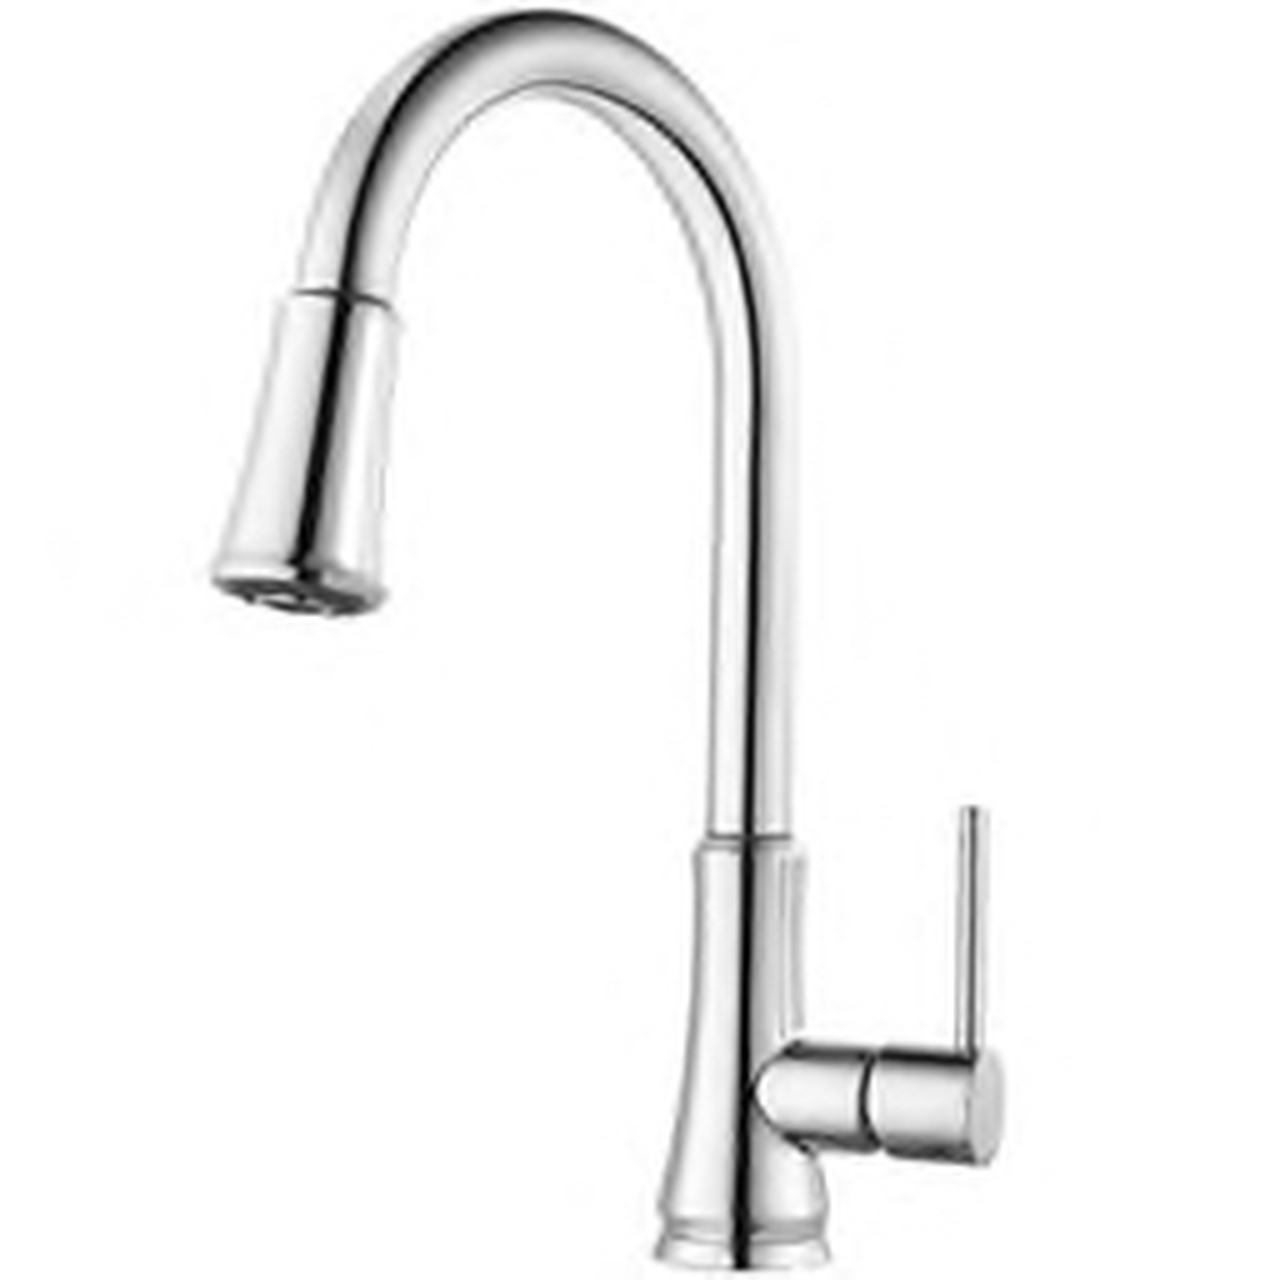 G529pf1c Price Pfister Kitchen Faucet 1 Hole Pull Down Kitchen Faucet With Single Lever Handle In Polished Chrome